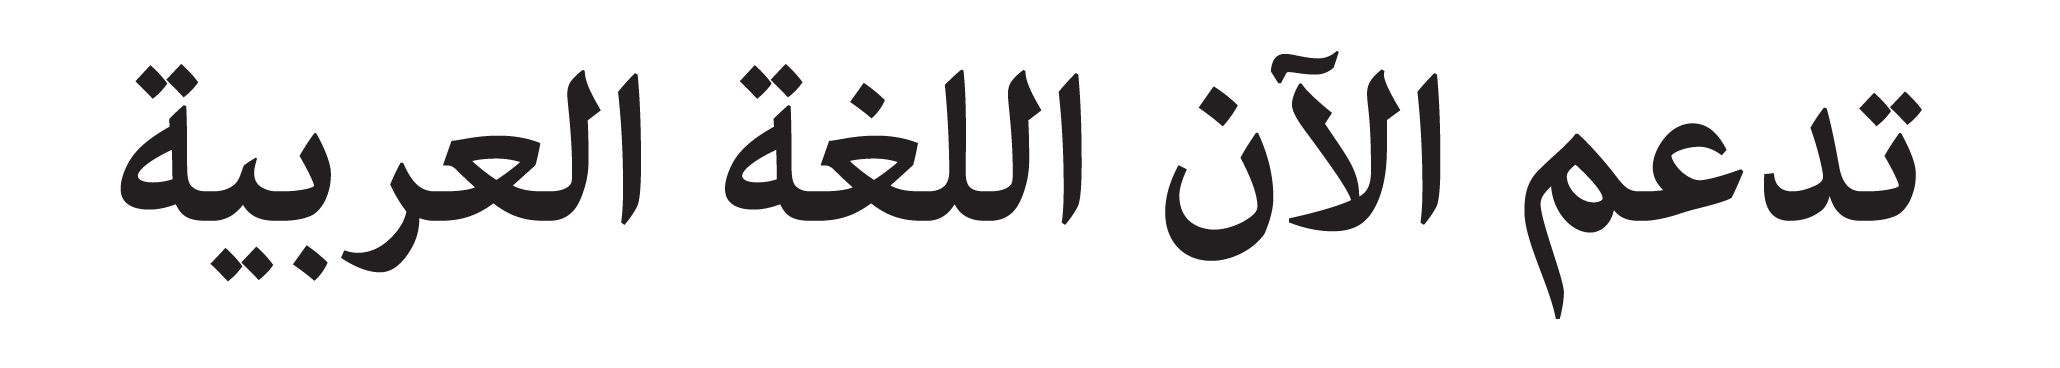 Now supporting scripts and screenplays in Arabic and Farsi